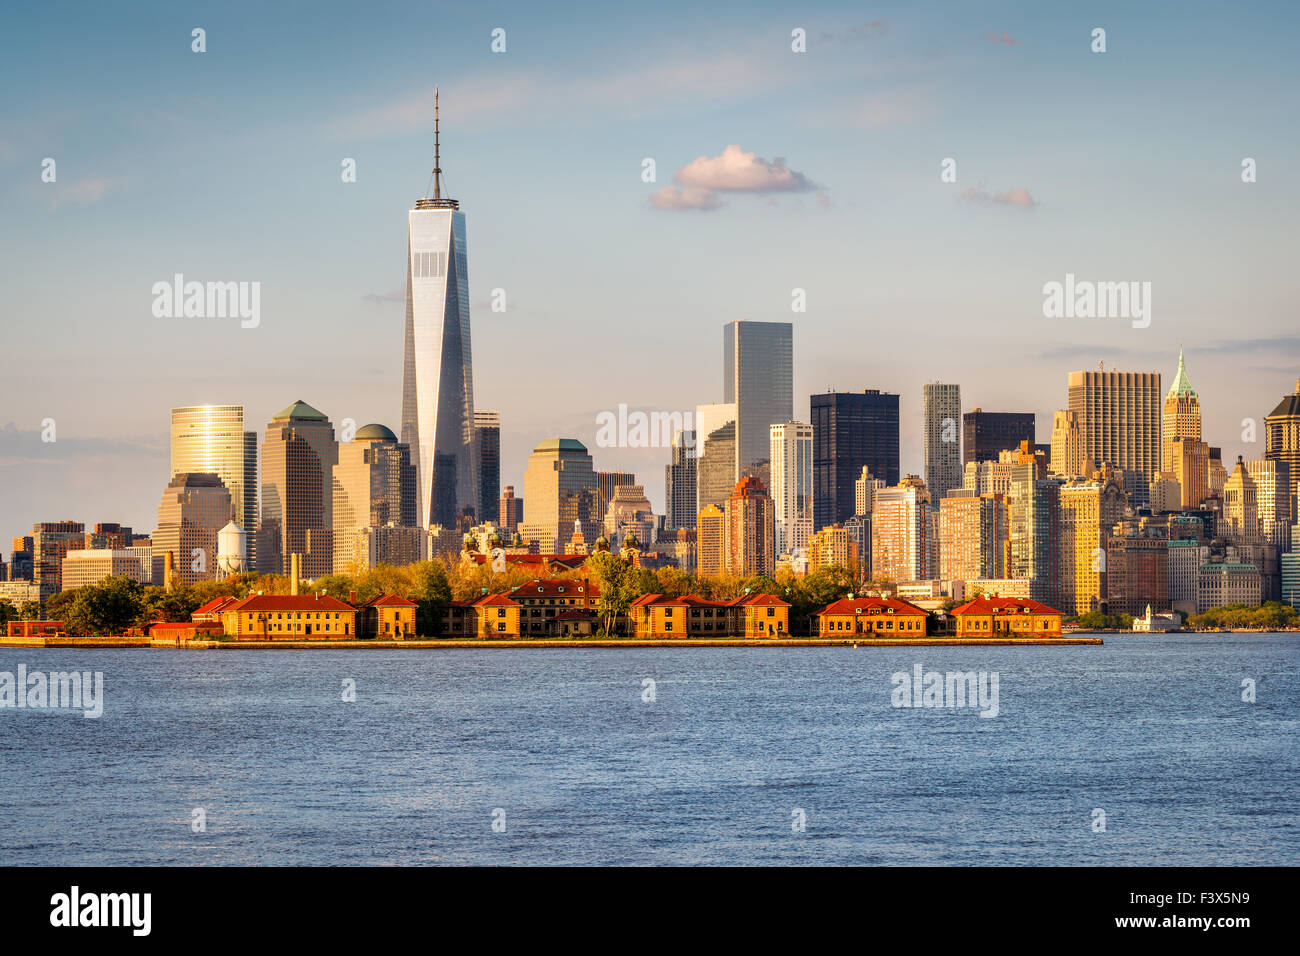 Vue sur le port de New York le World Trade Center et le Lower Manhattan avec quartier des gratte-ciel et Ellis Island. Photo Stock